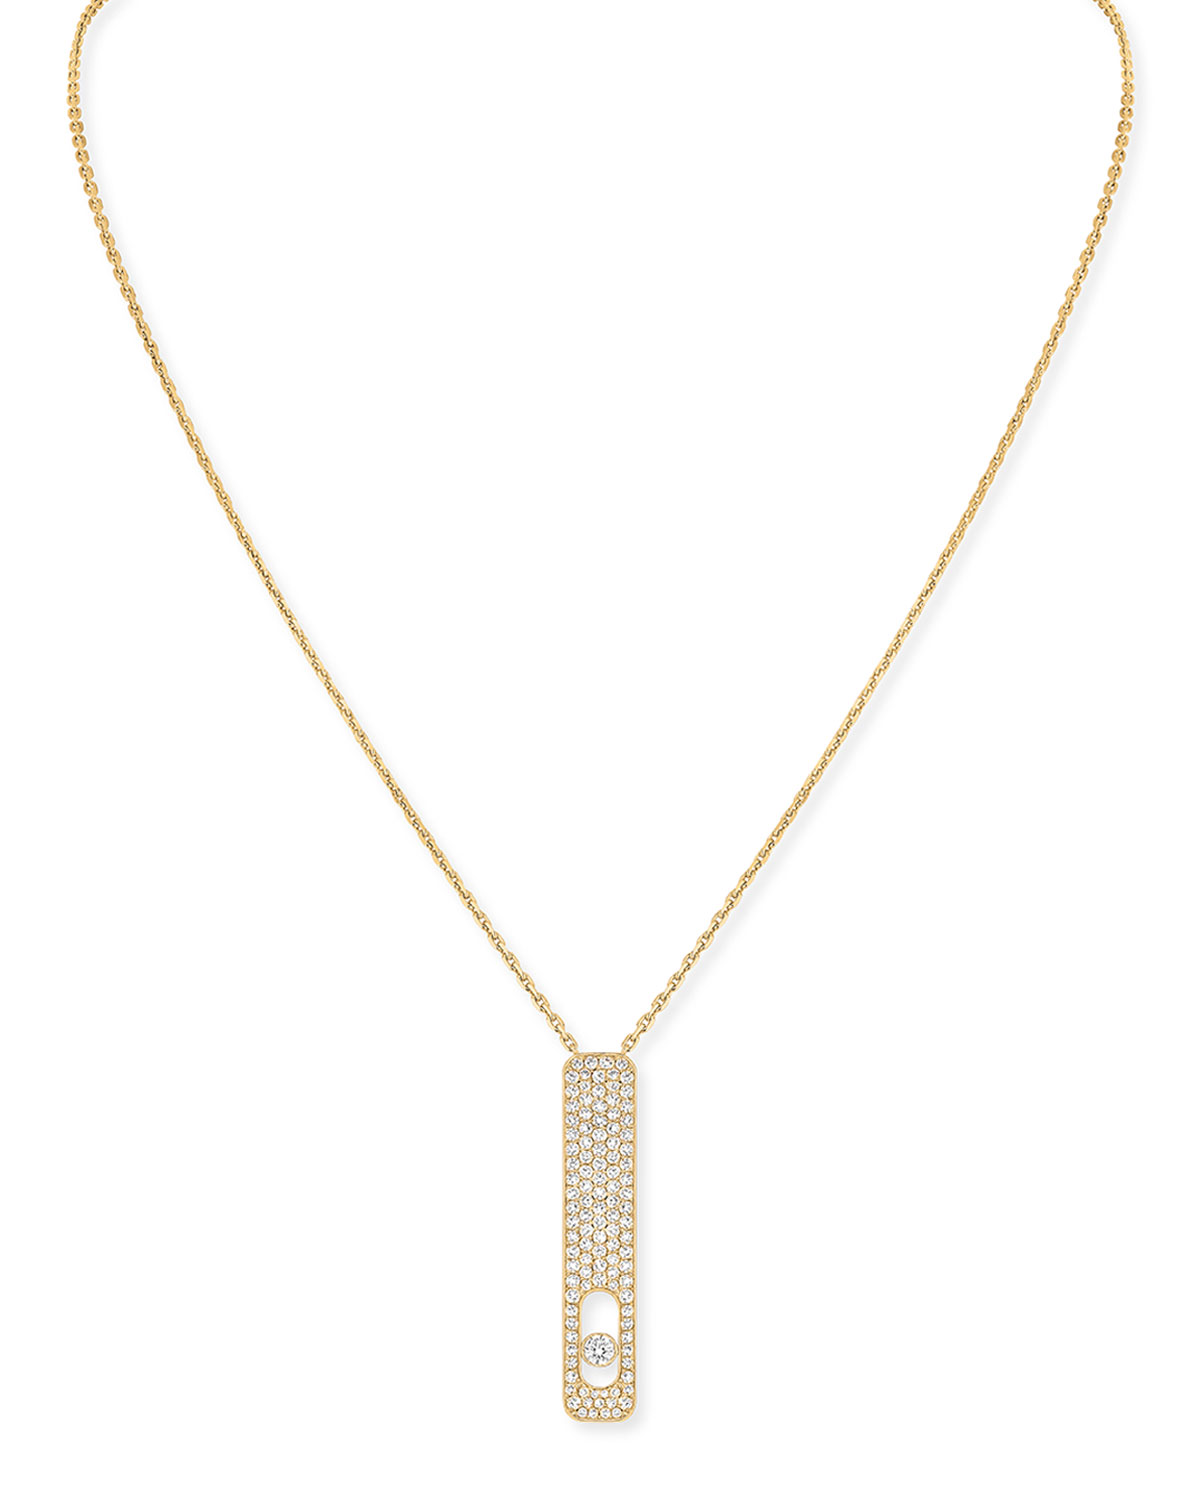 My First Diamond 18k Yellow Gold Pave Necklace